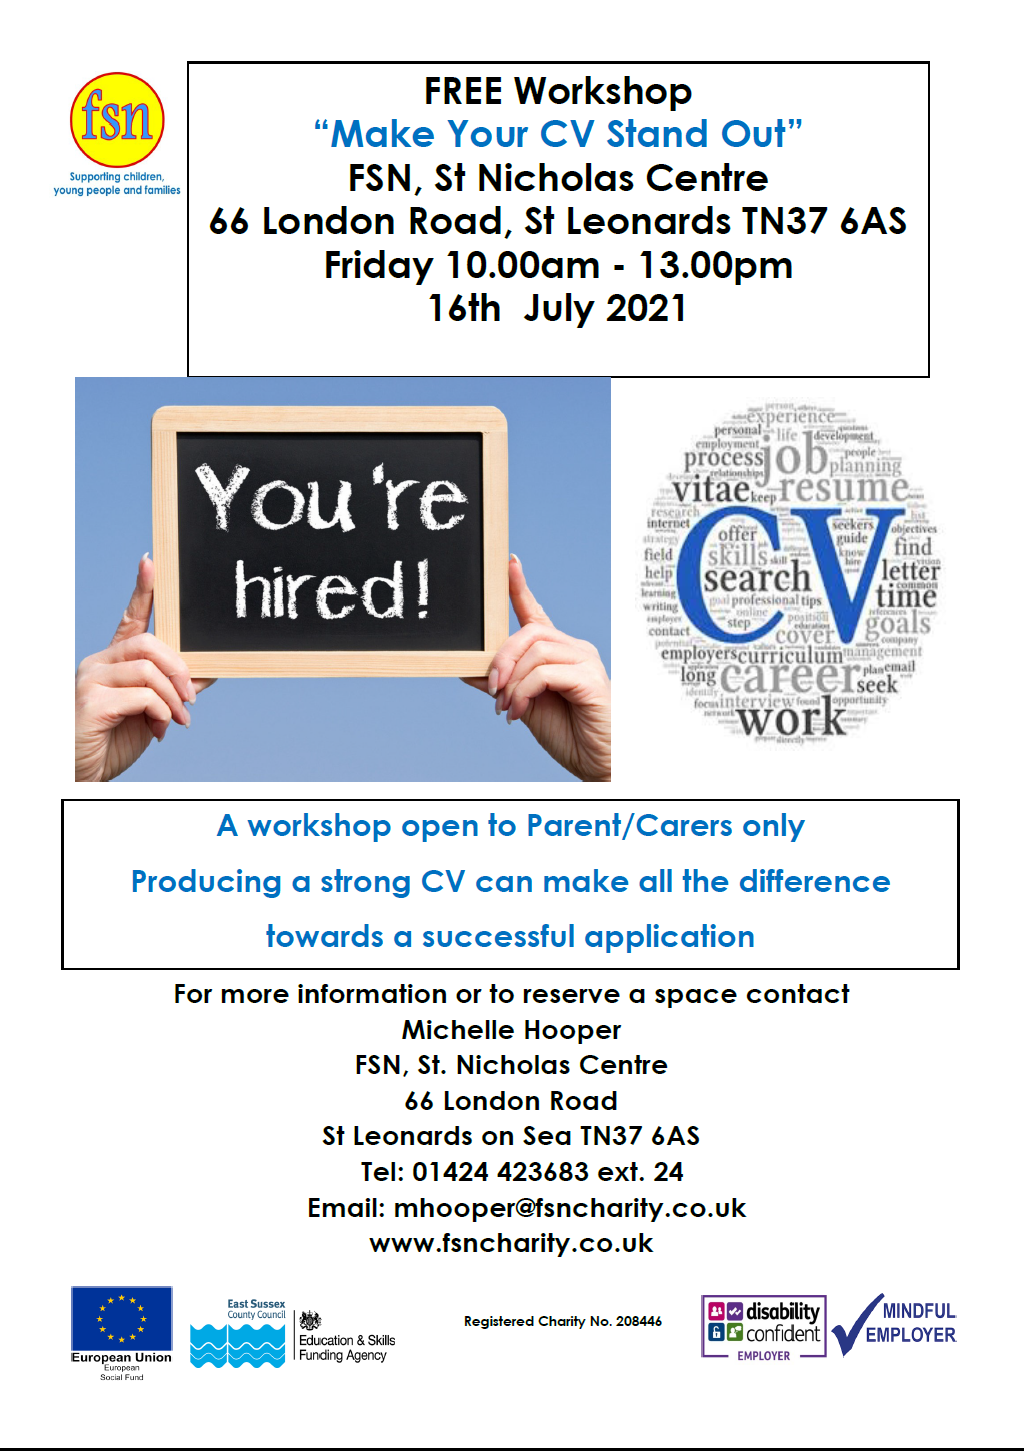 FSN – Make Your CV Stand Out